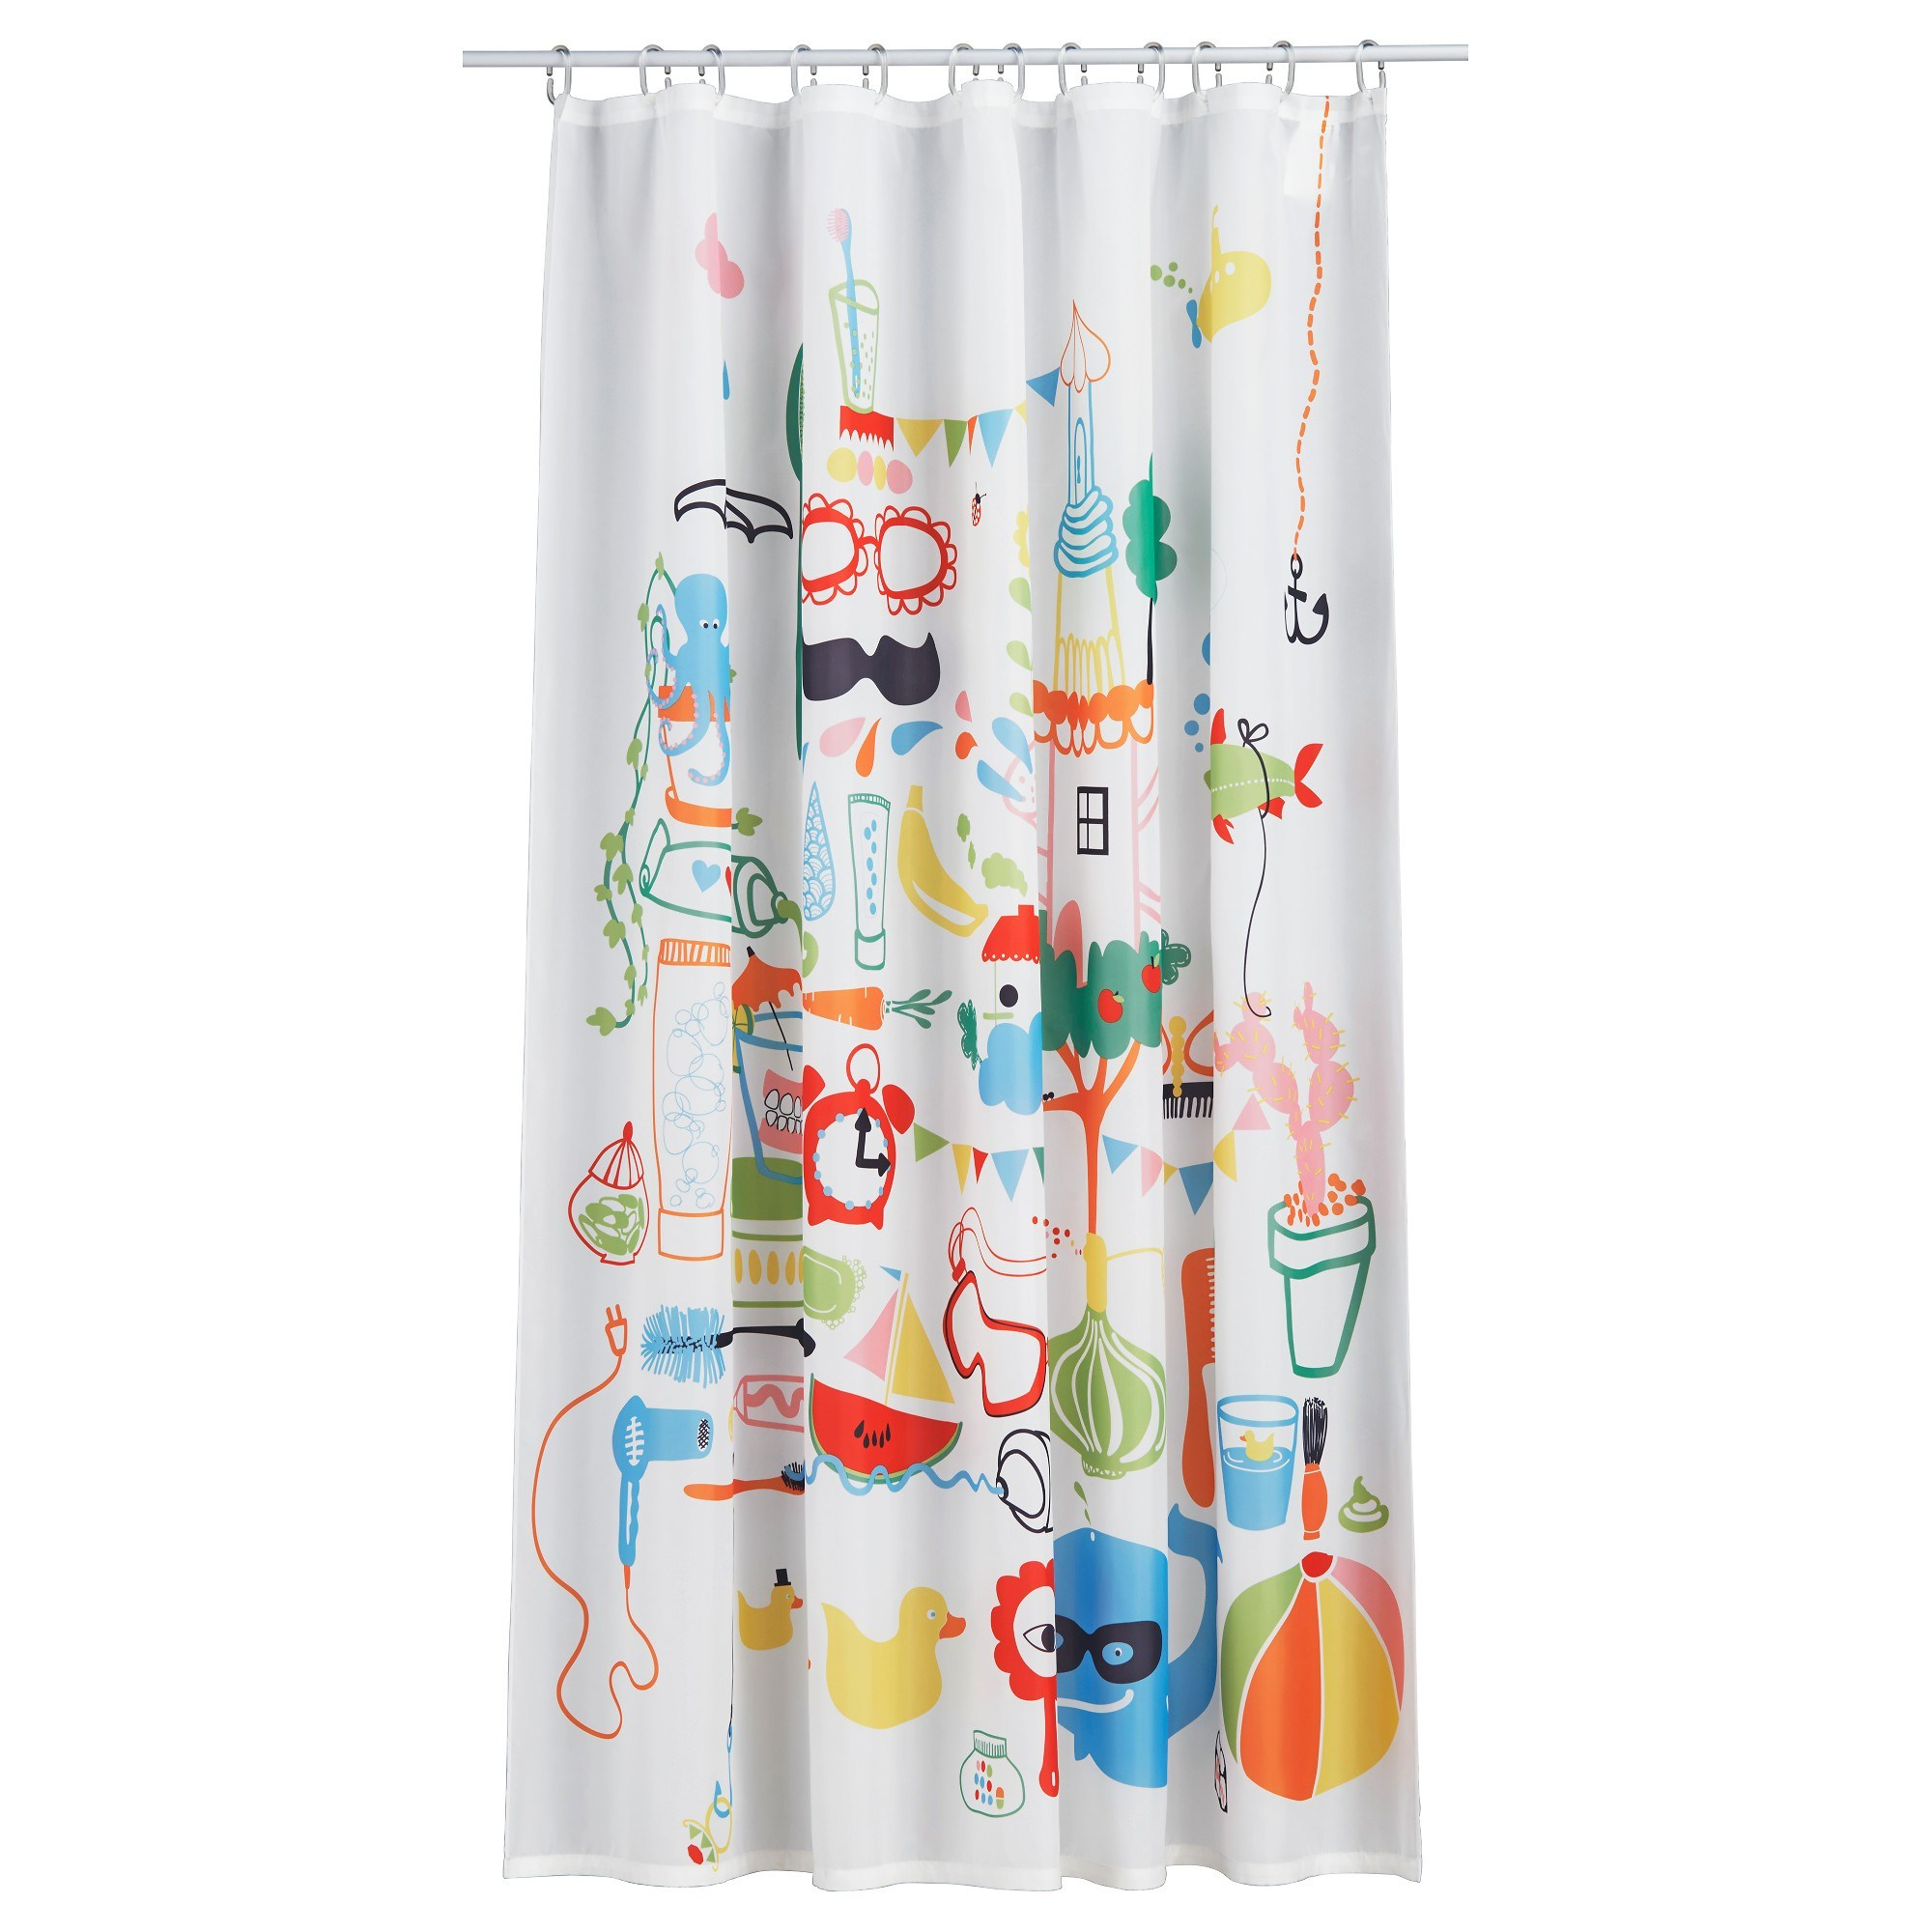 Ikea Shower Curtain for Best Your Bathroom Decoration: 84 Shower Curtain Fabric | Ikea Shower Curtain Hooks | Ikea Shower Curtain